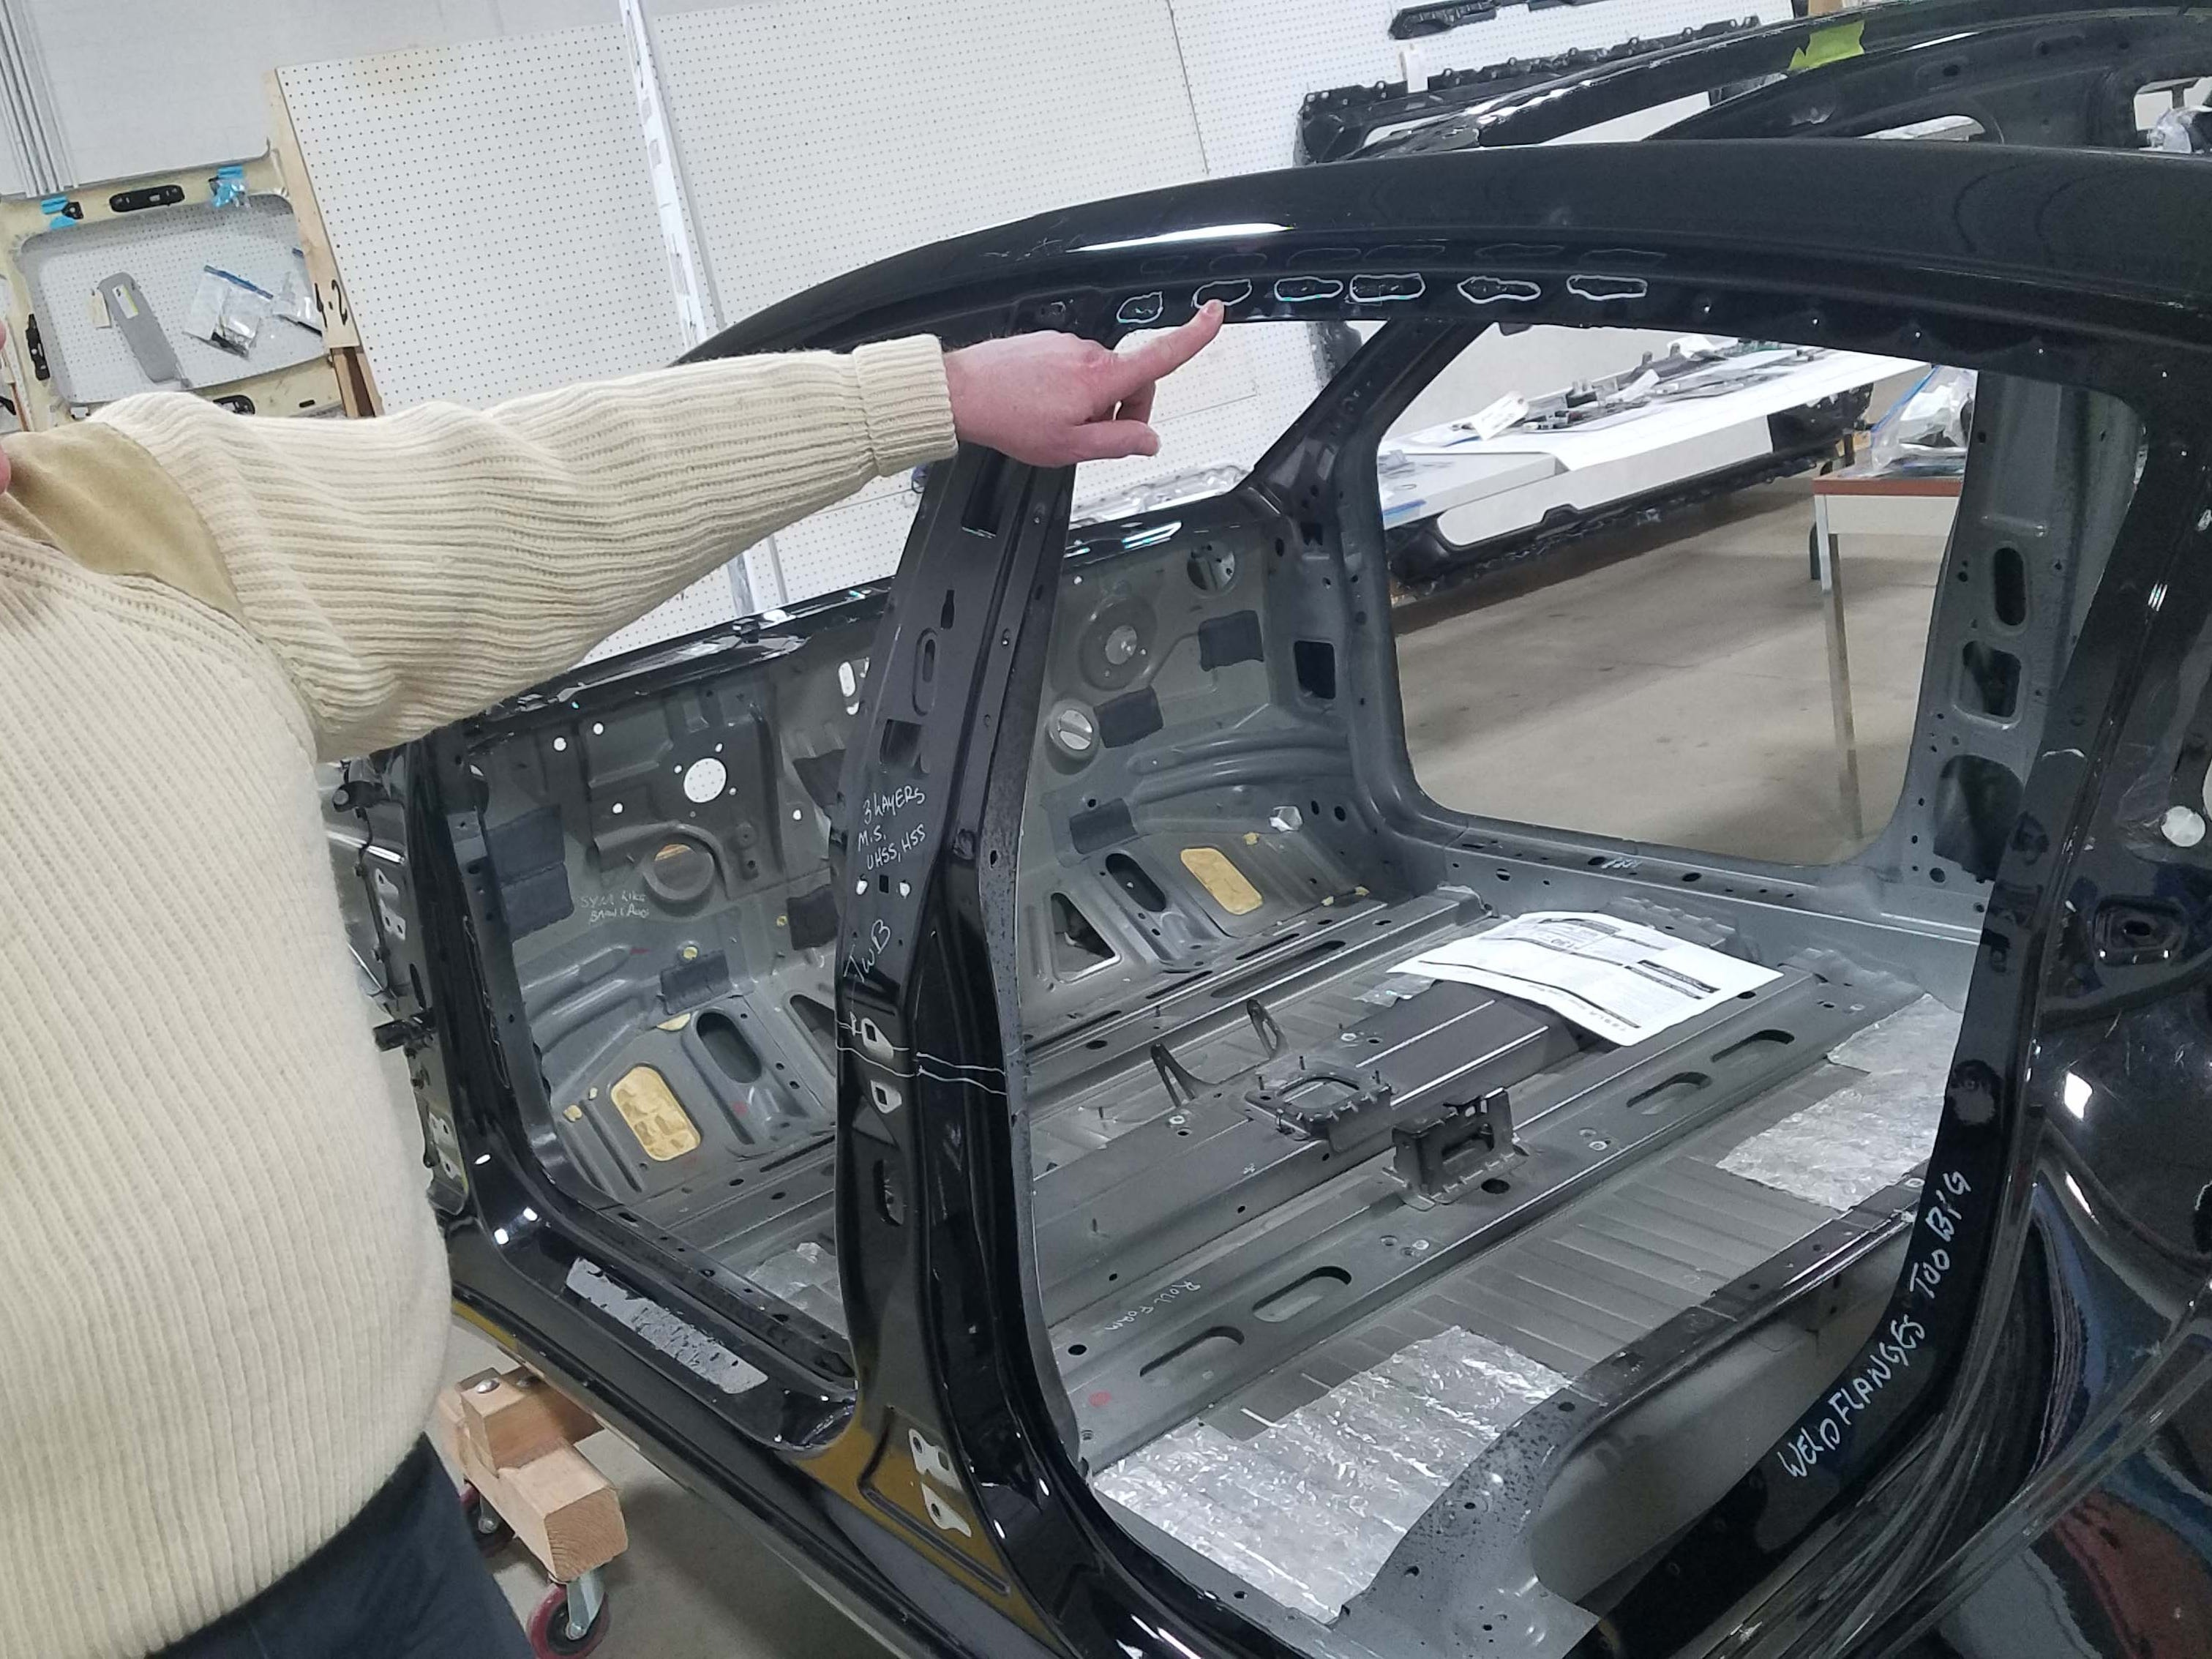 Munro & Assoc. CEP Sandy Munro points out the three different fastening systems for the Tesla Model 3 rear door fame - an example of the manufacturing complexity required of the Tesla.